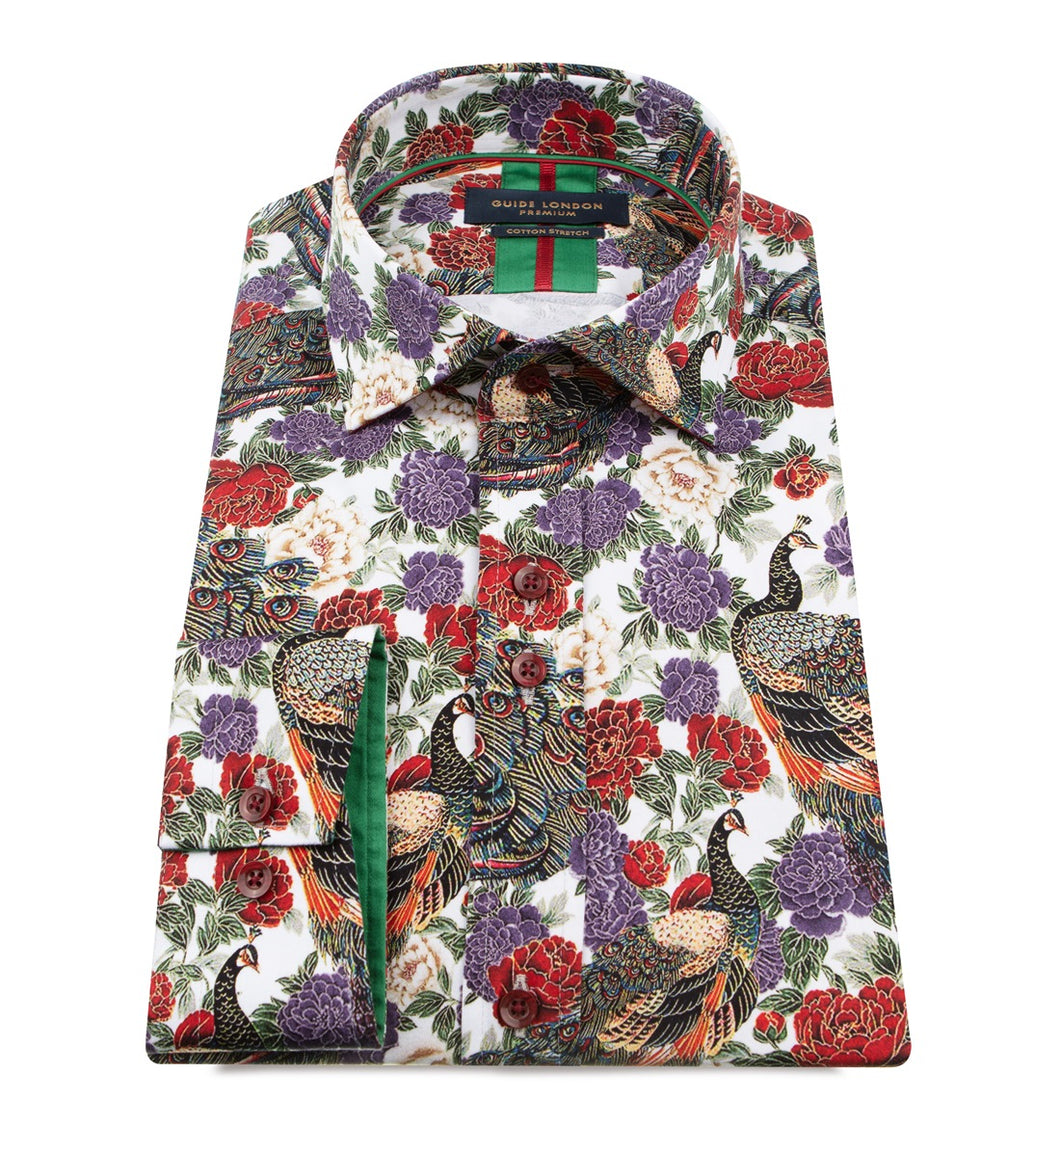 Guide London Bright Floral Print Shirt (LS75743)